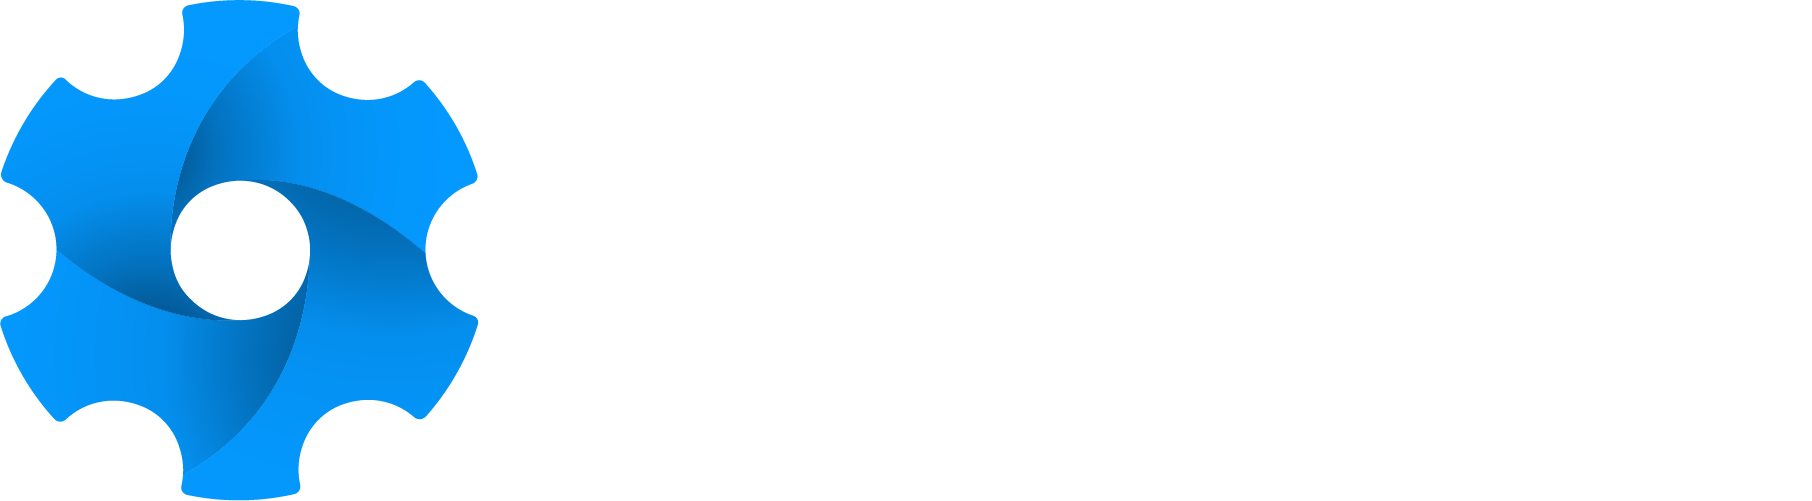 SysGears Career